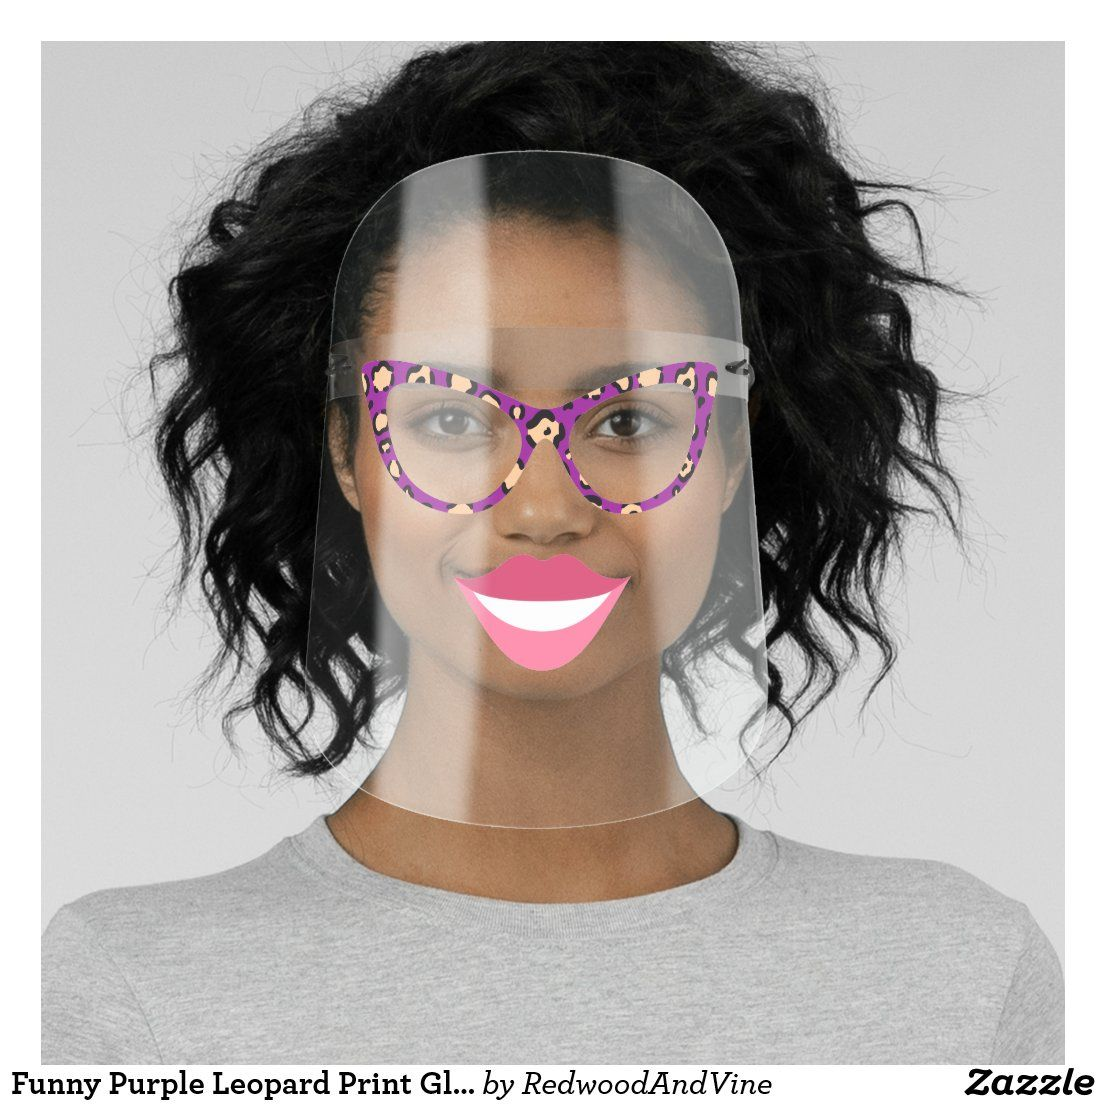 Pin on ARTISTIC FACE SHIELDS AT ZAZZLE